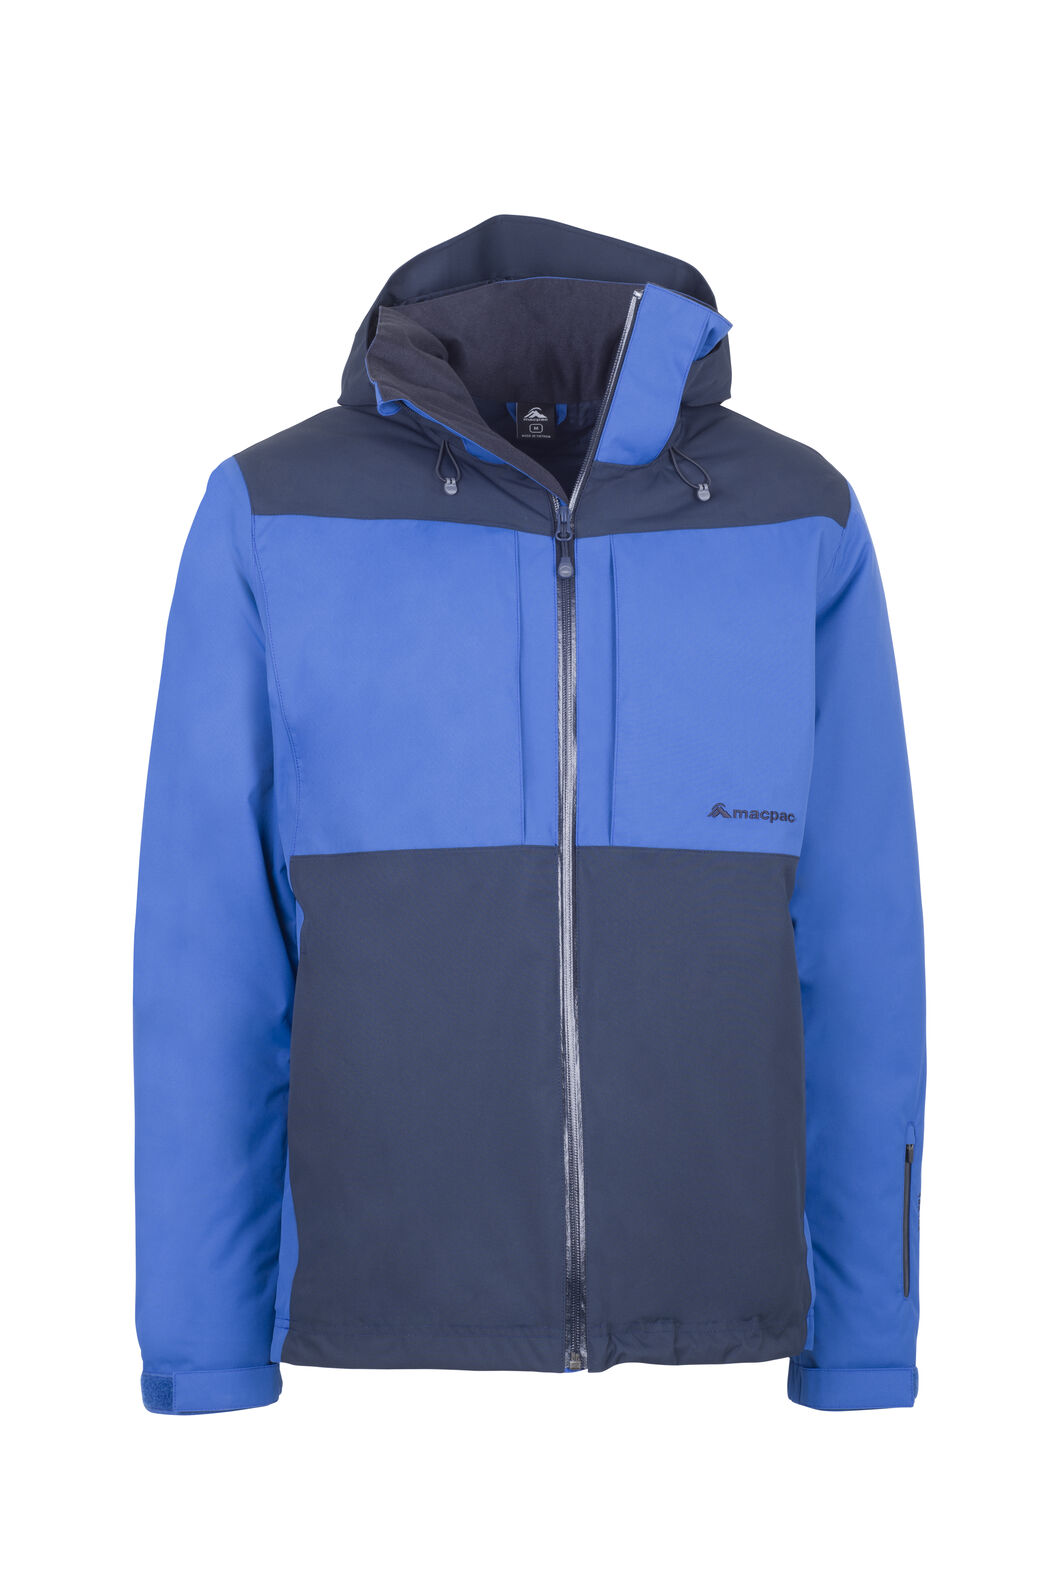 Macpac Slope Jacket - Men's, True Blue/Salute, hi-res